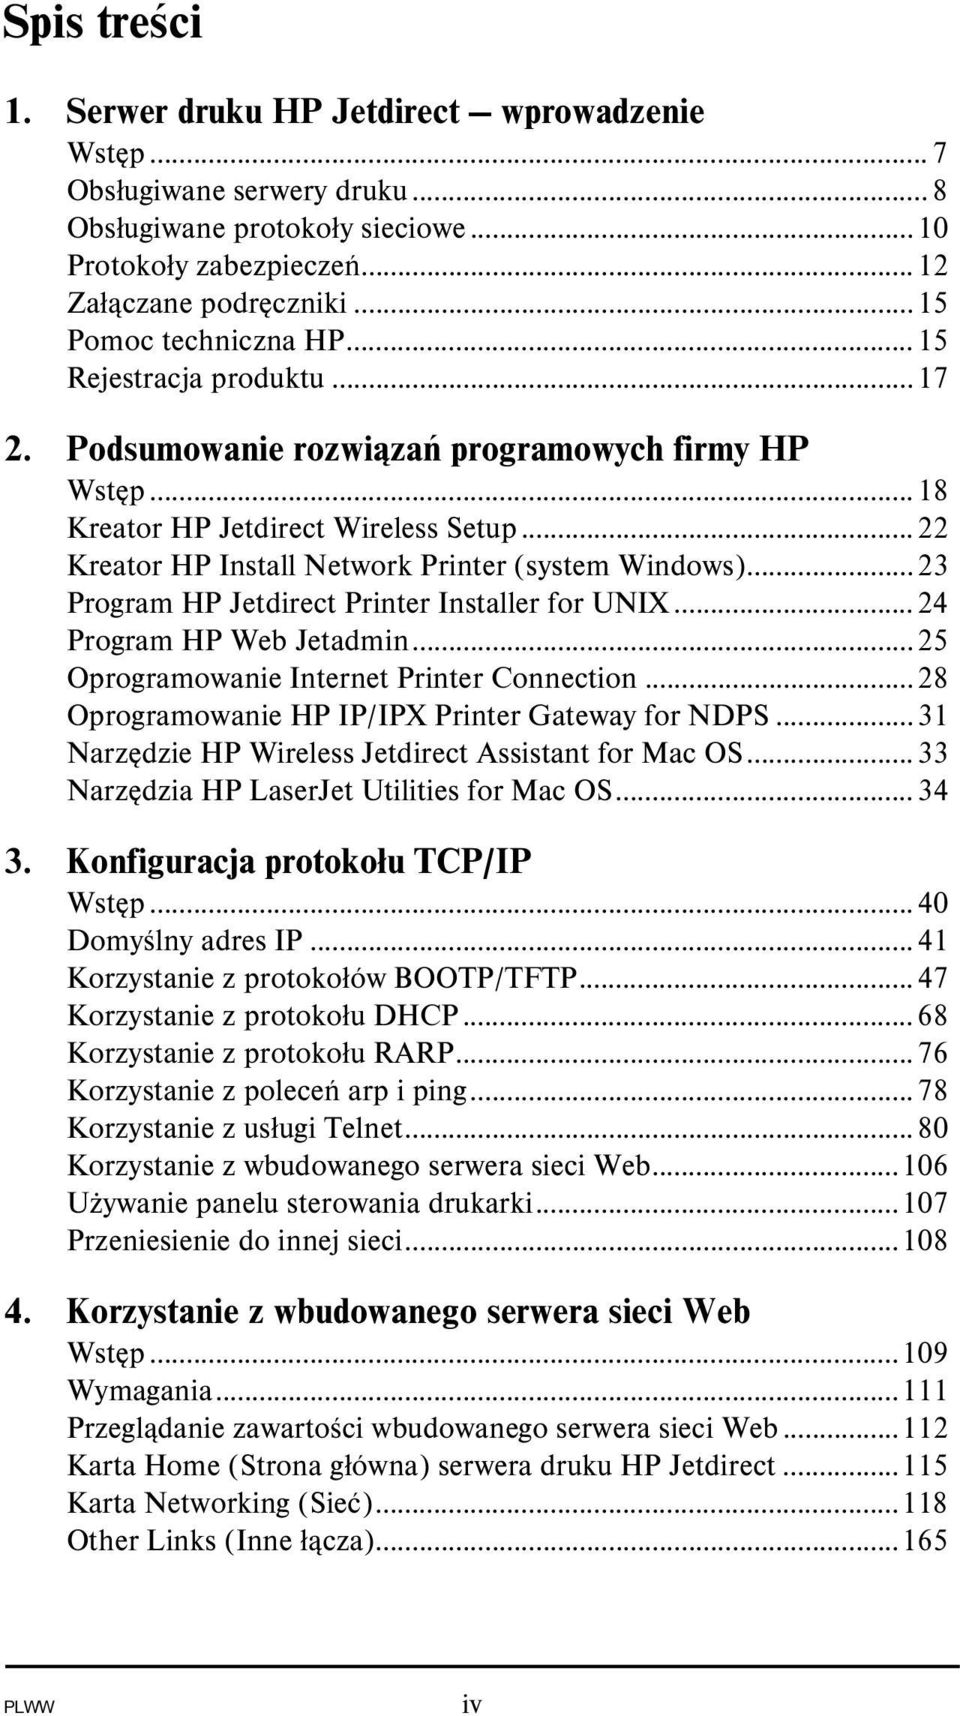 ..22 Kreator HP Install Network Printer (system Windows)...23 Program HP Jetdirect Printer Installer for UNIX...24 Program HP Web Jetadmin...25 Oprogramowanie Internet Printer Connection.